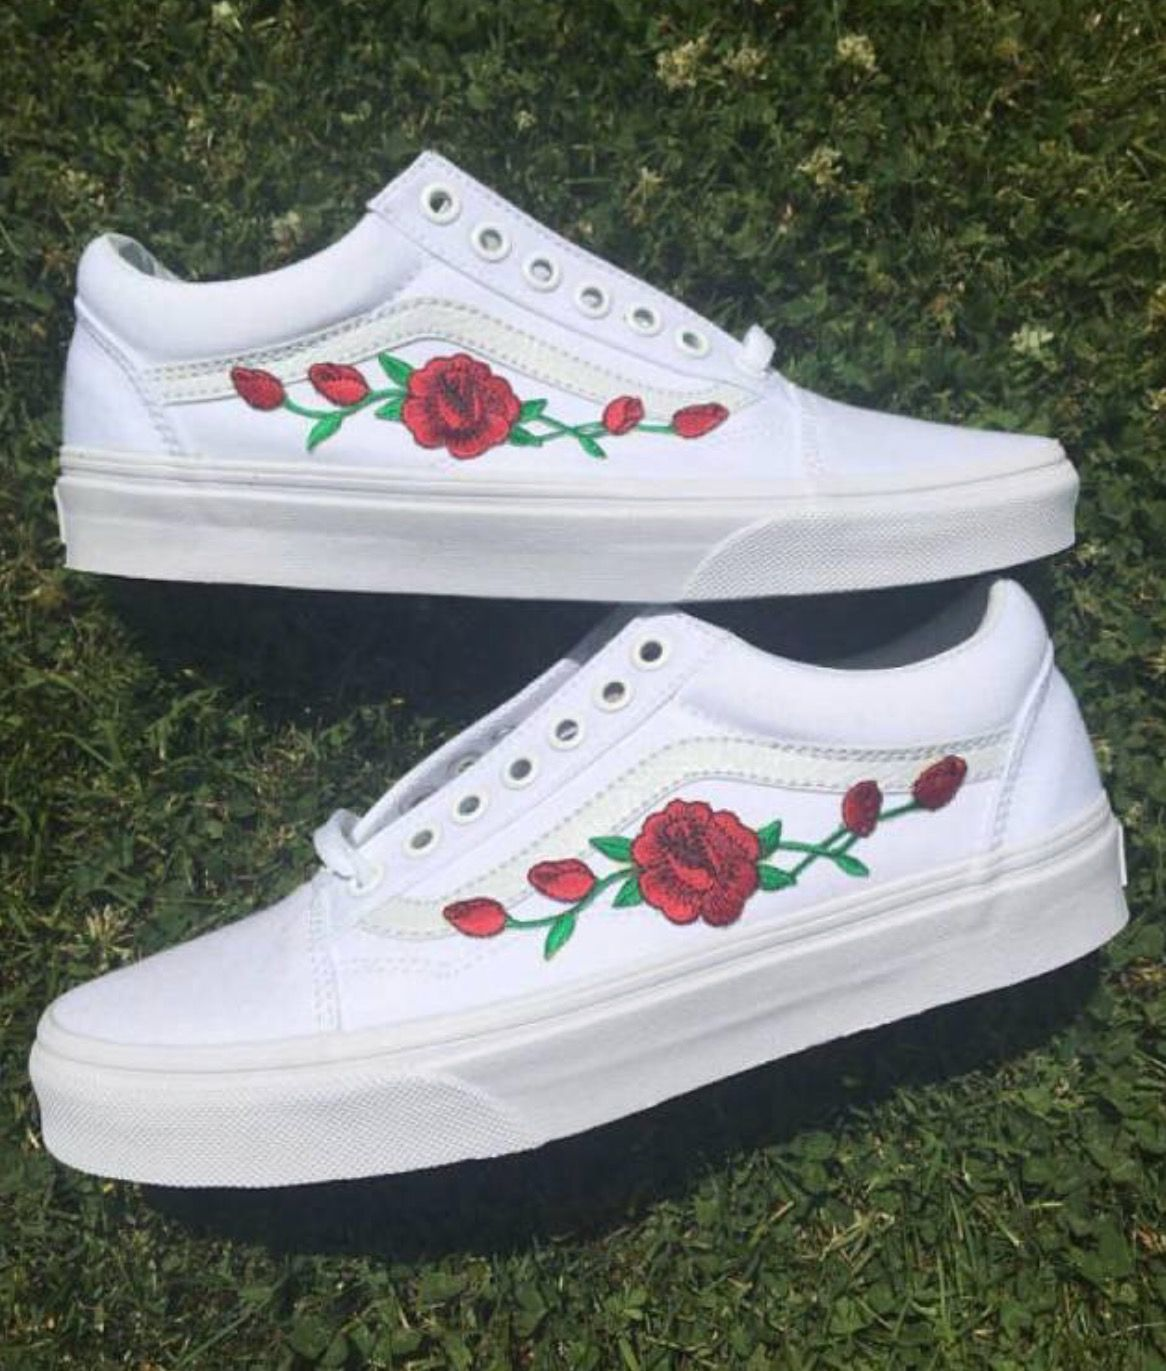 ae94da33c465a8 White Vans Old Skool Custom Rose Embroidered Shoes-Vans Rose Shoes Floral  Vans-Custom Vans Rose Vans Old Skool Vans-Men Women Youth Sizes • Shoe  Old  Skool ...